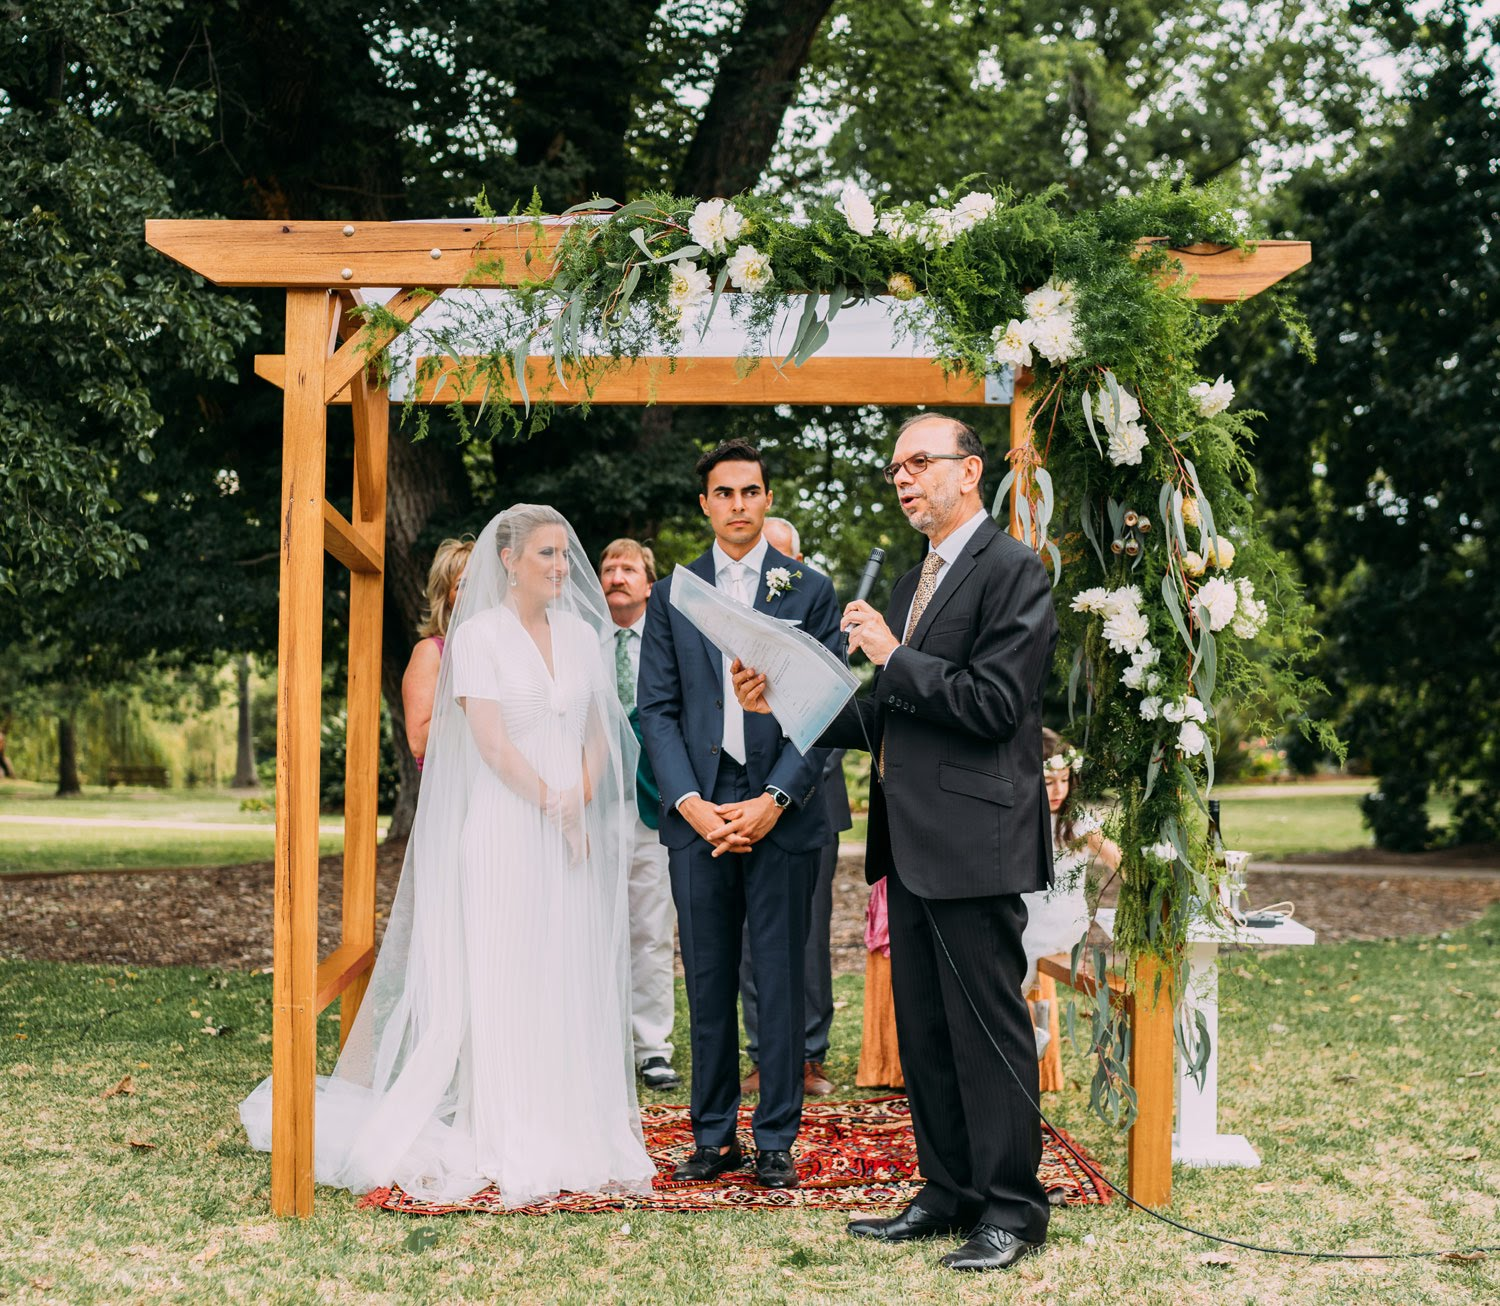 Wedding Altar Hire Melbourne: Wooden Wedding Arch Hire